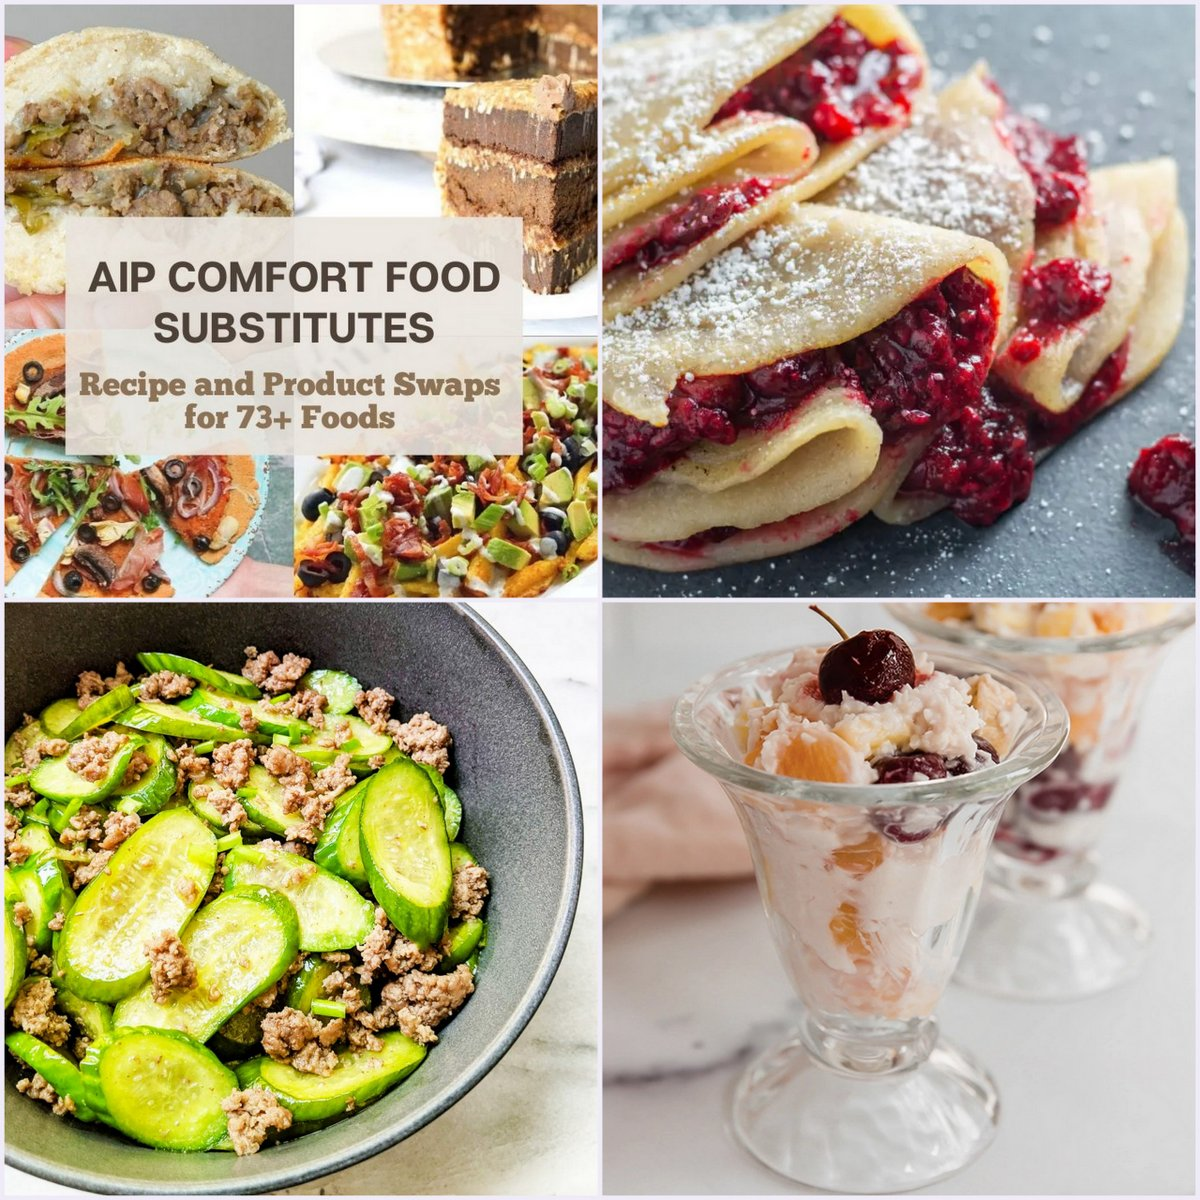 Paleo AIP Recipe Roundtable #385   Phoenix Helix - *Featured Recipes: AIP Comfort Food Substitutes, Crepes with Berry Compote, Simple Cucumber and Beef Stir Fry, and Retro Ambrosia Salad.